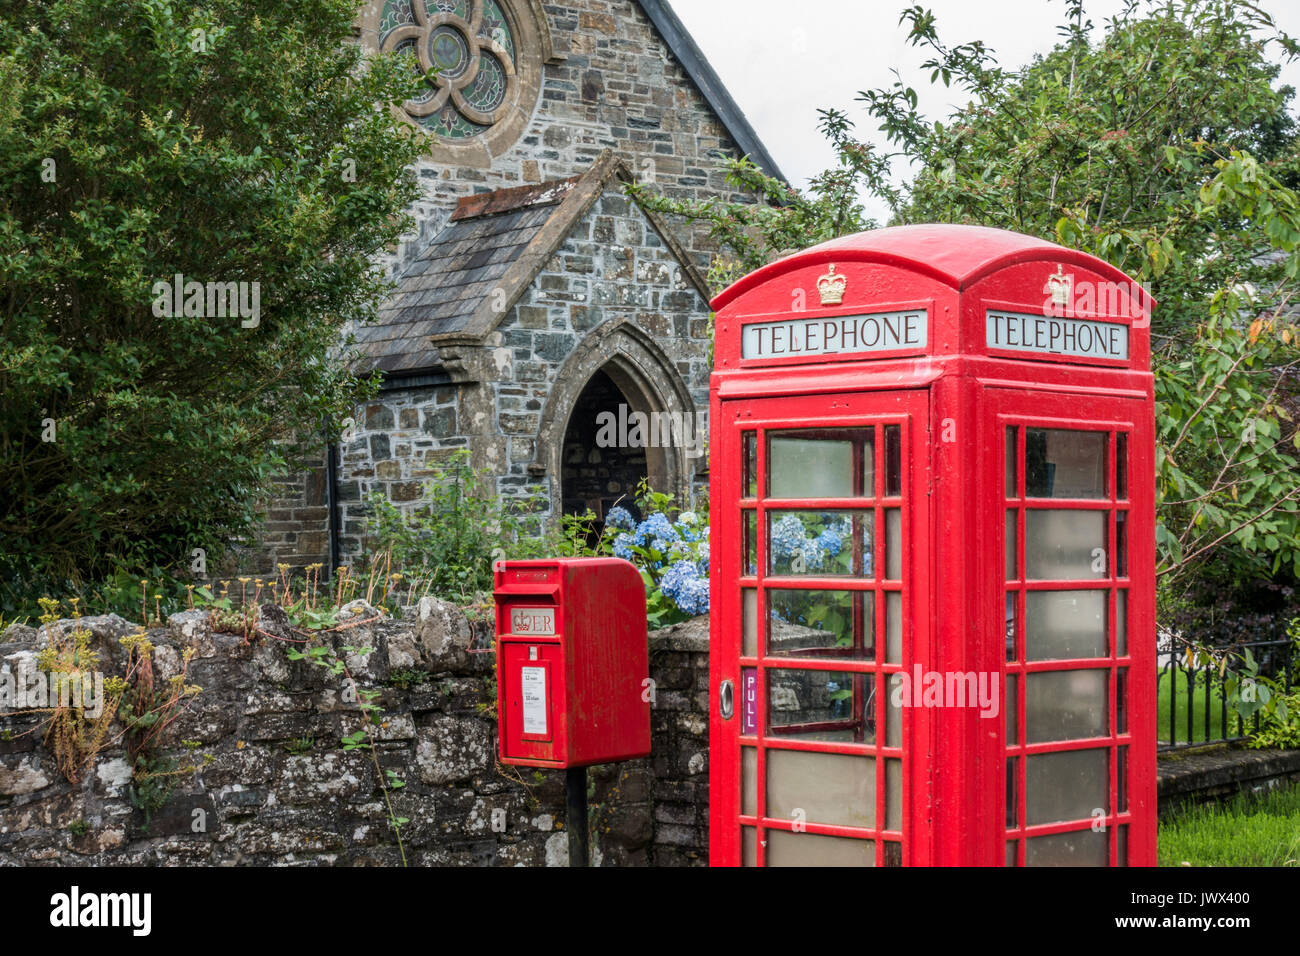 A traditional red Royal Mail postbox alongside an iconic red telephone kiosk, outside the old church, Lydford, near Okehampton, Devon, England, UK. - Stock Image